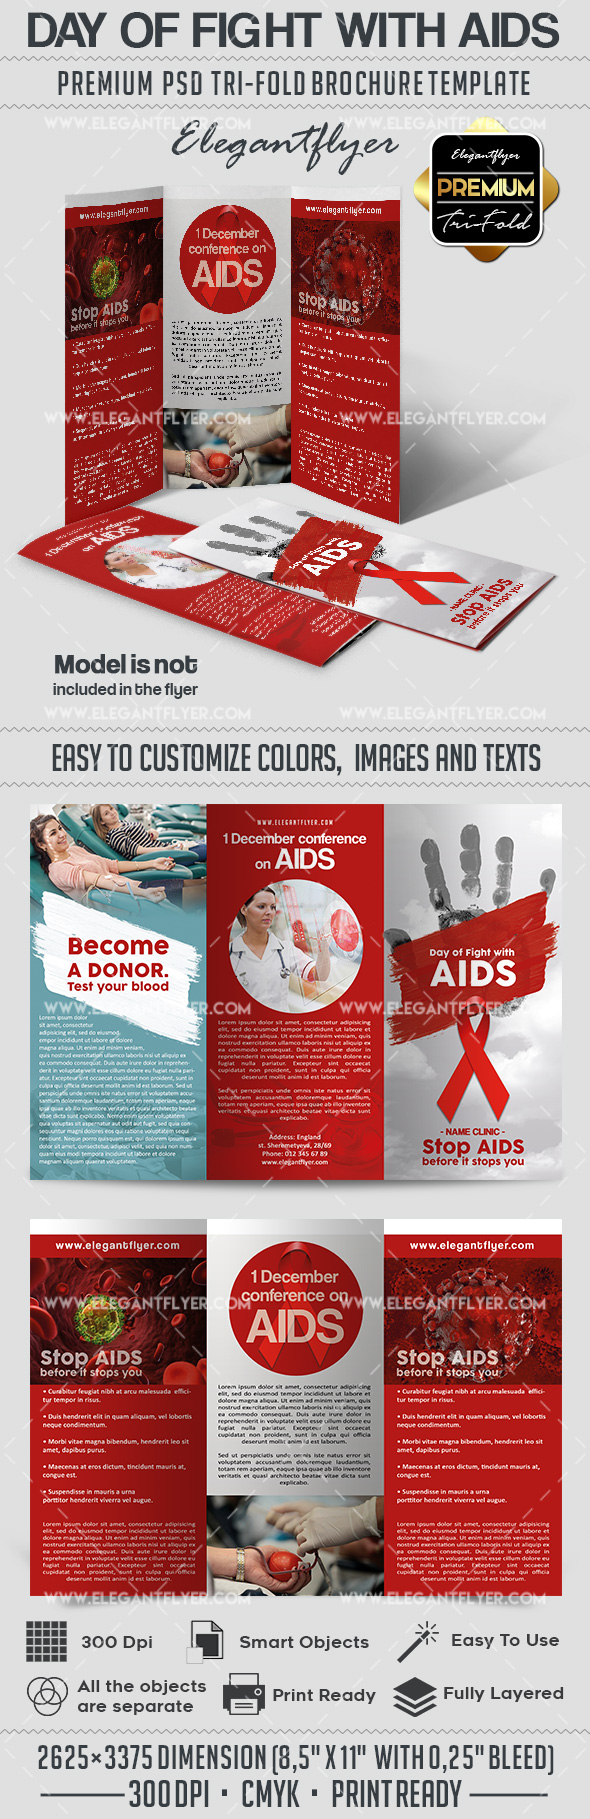 day of fight with aids psd brochure